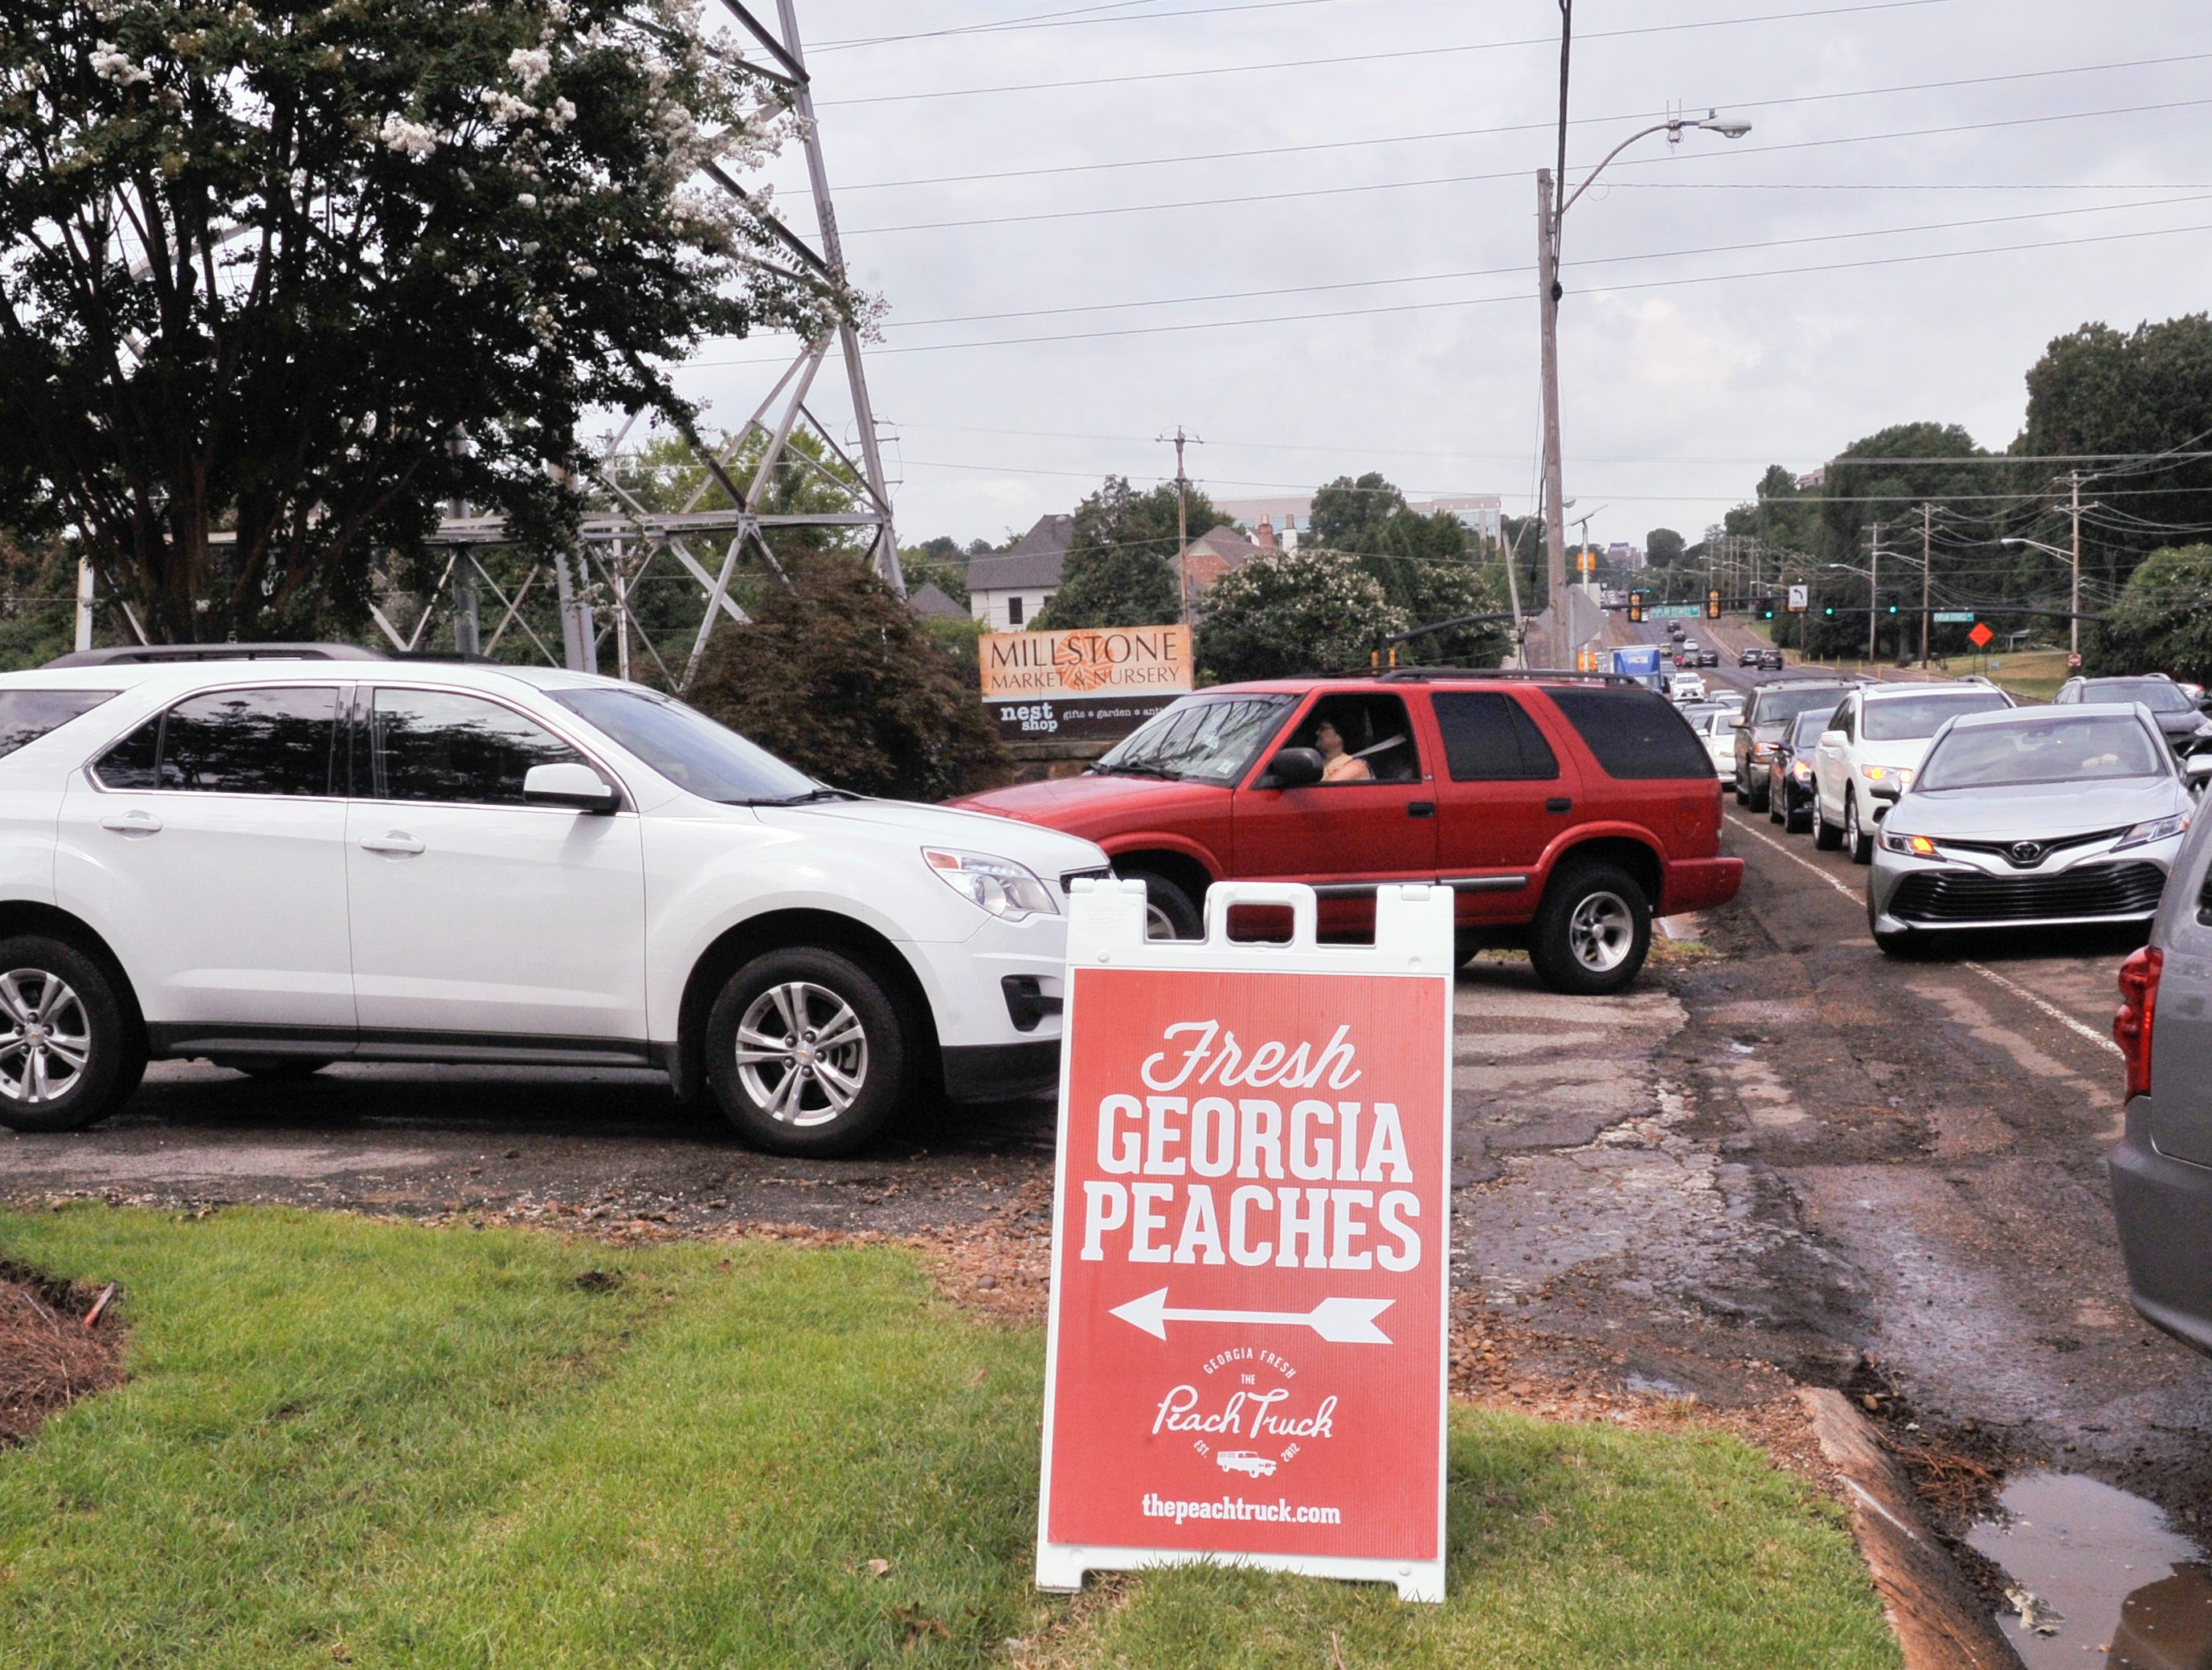 Traffic was backed up getting into Millstone Nursery for The Peach Truck on Wednesday.